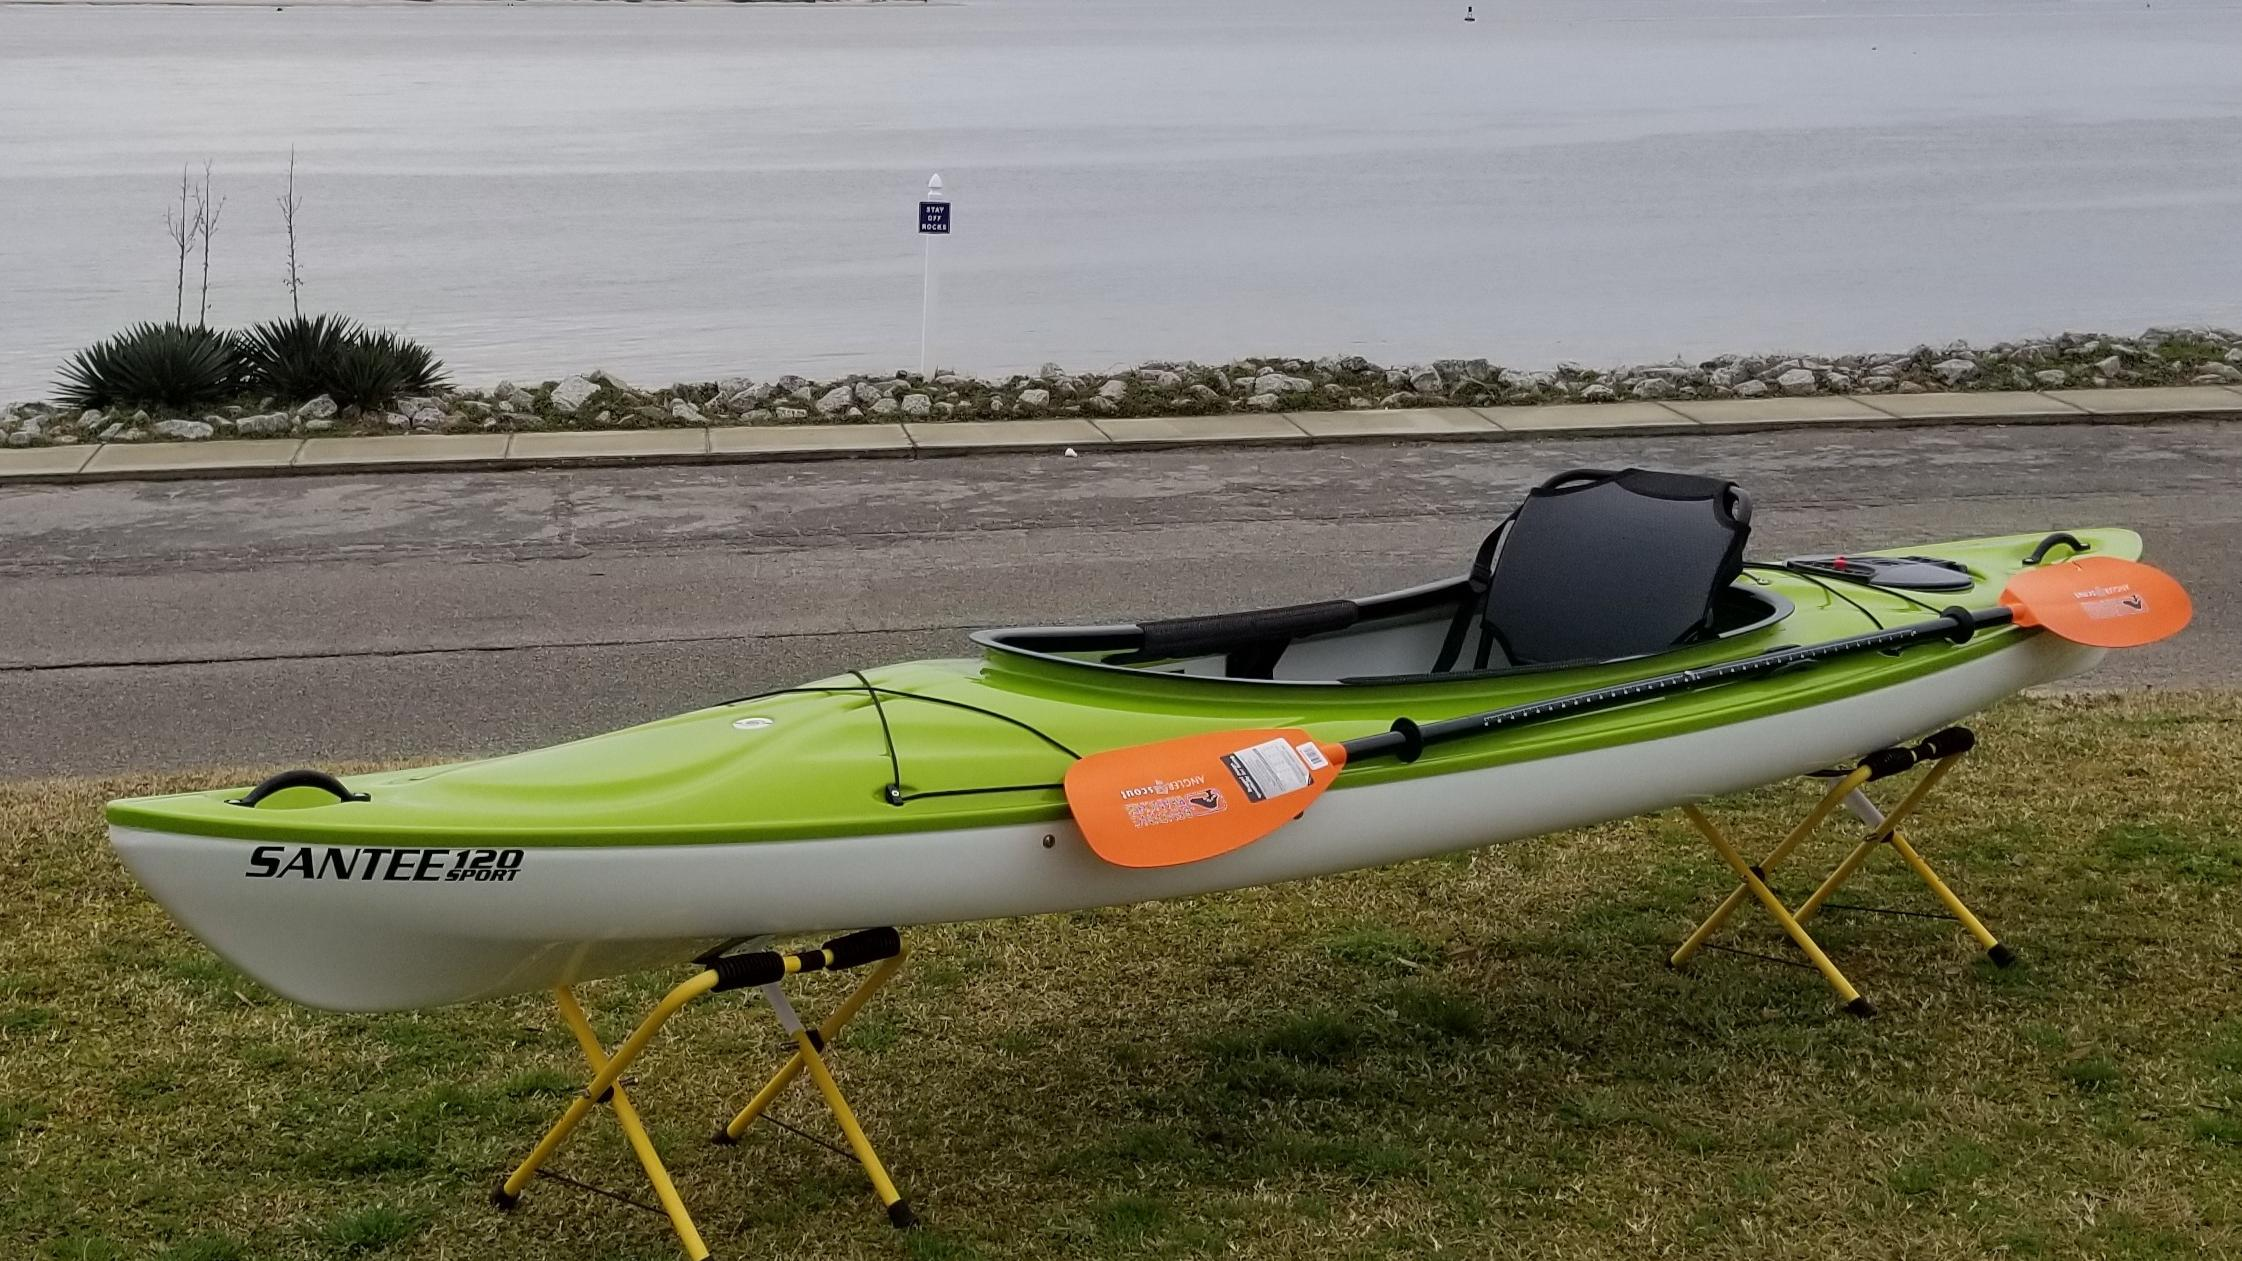 Win this Santee 120 Sport Kayak Support your NC Maritime Museum Southport